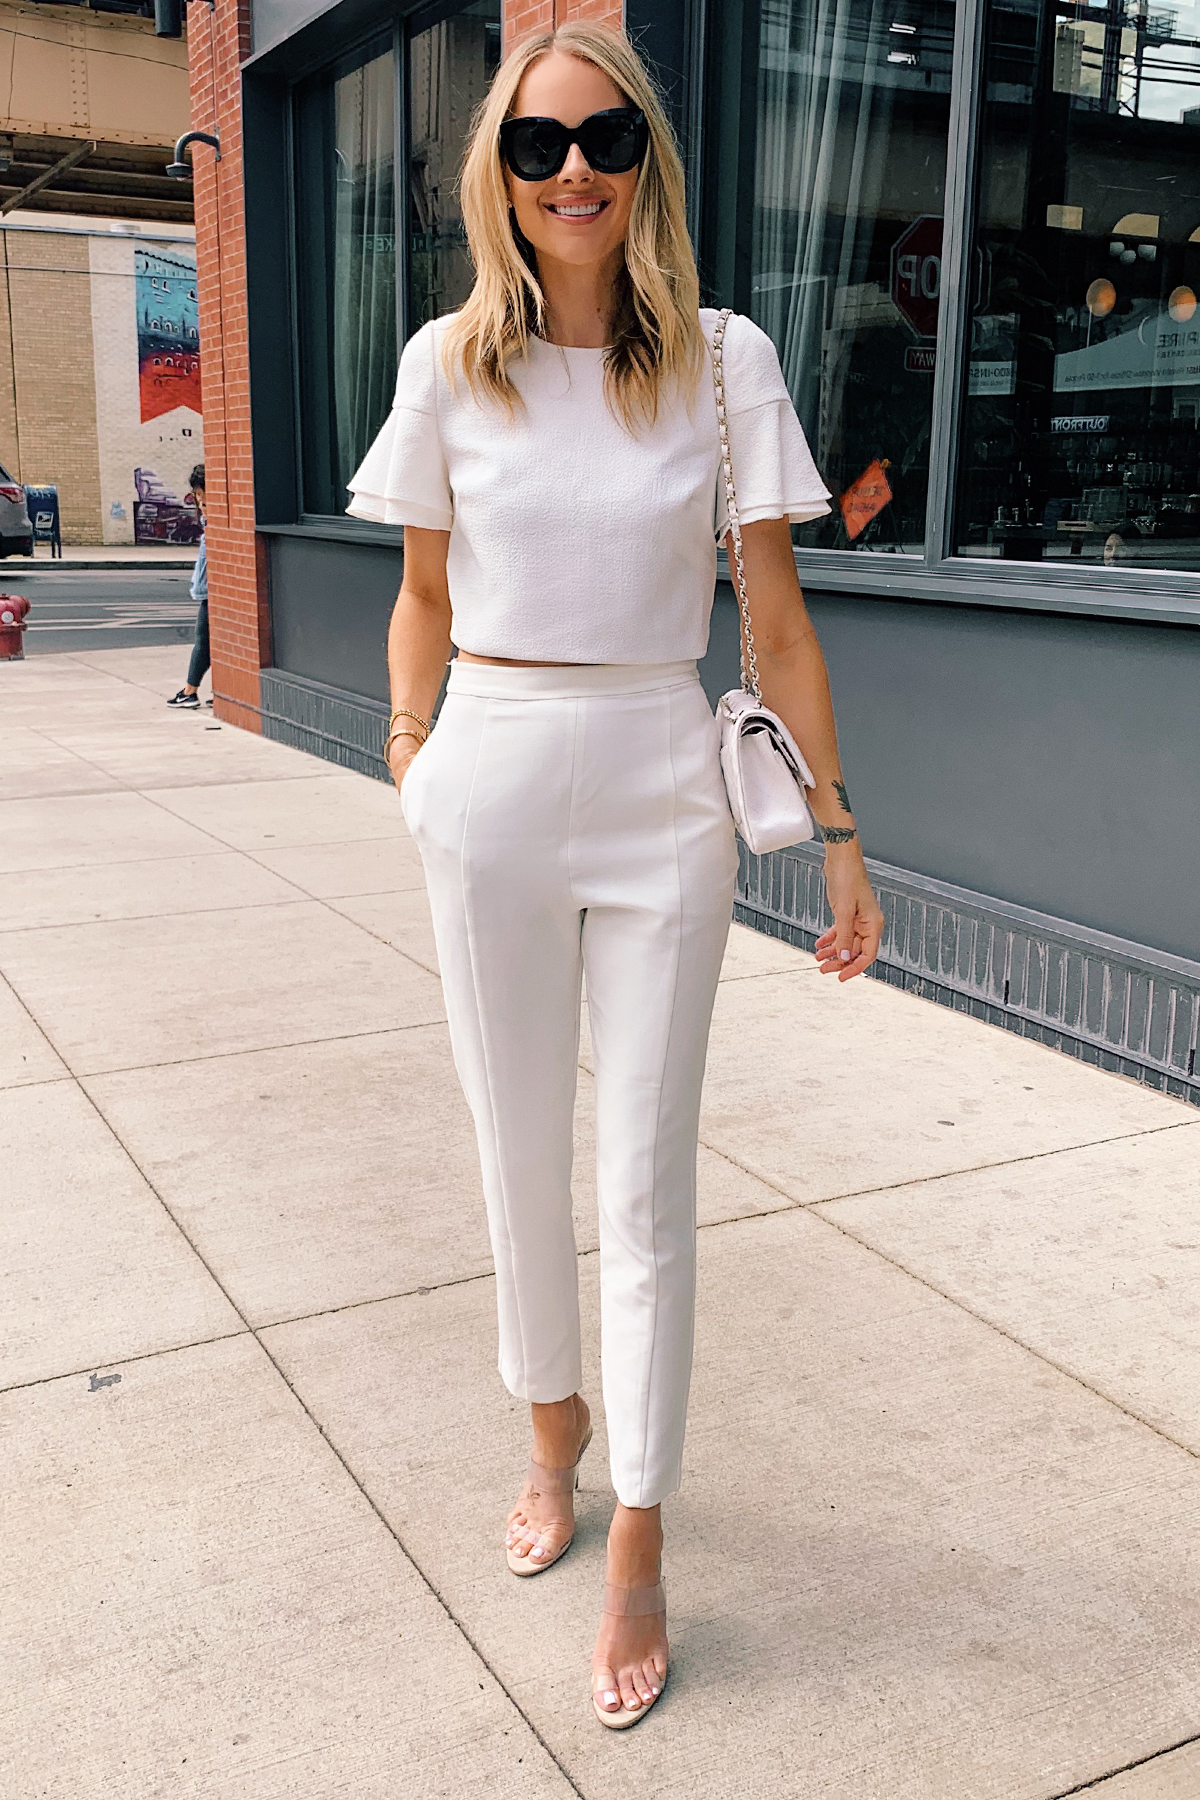 Fashion Jackson Wearing White Two Piecee Jumpsuit Clear Heels White Chanel Handbag Bachelorette Outfit